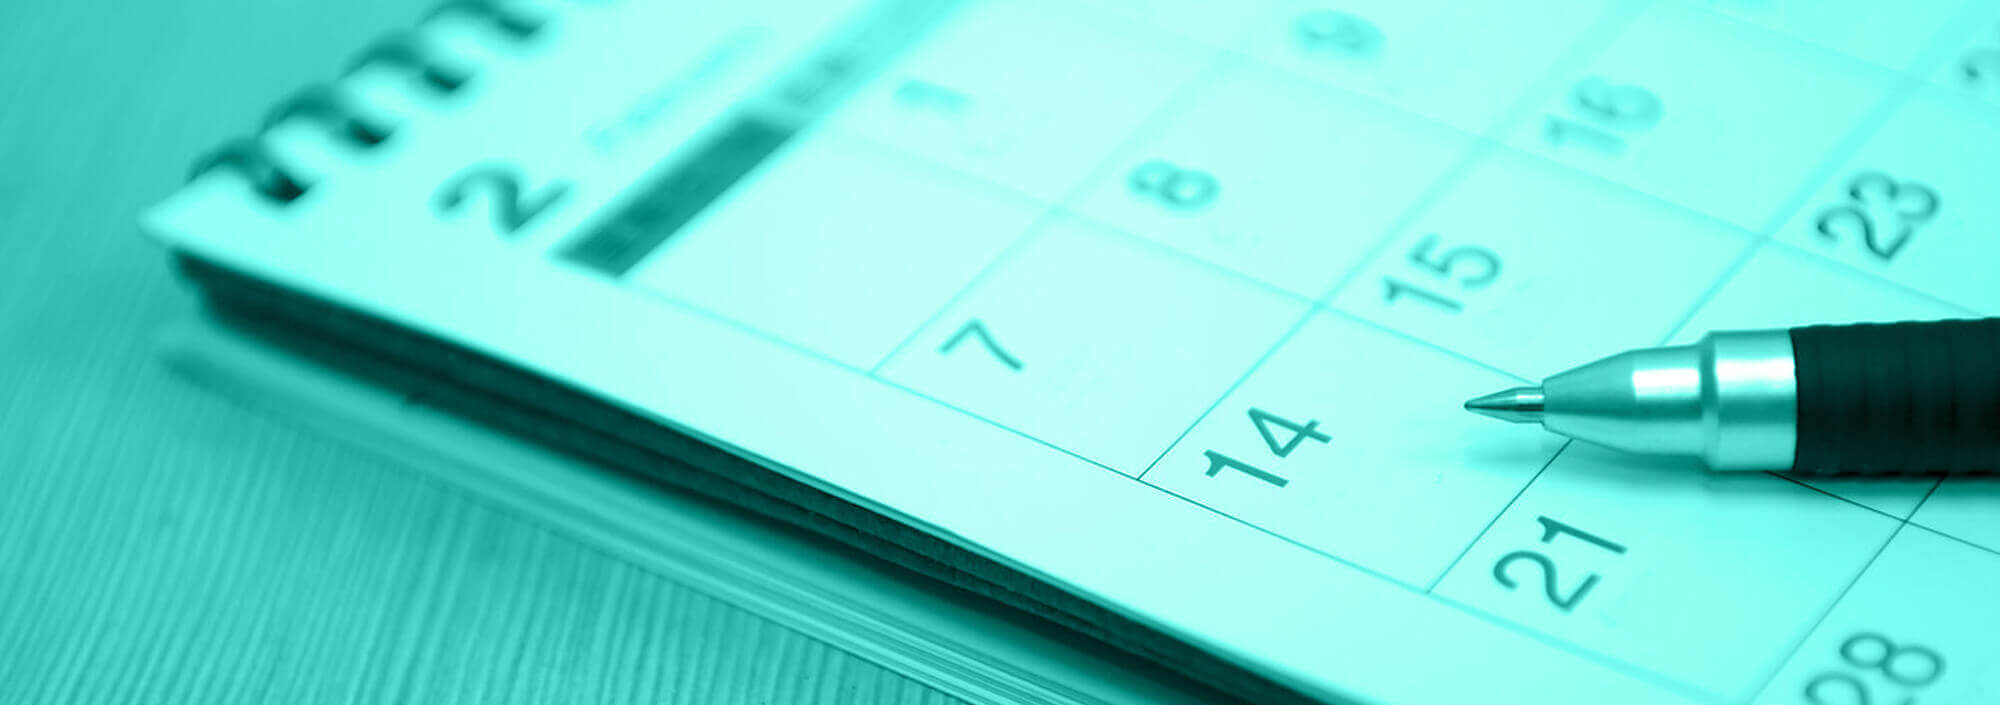 Simplify Scheduling and Increase Client Loyalty with Cluster Scheduling